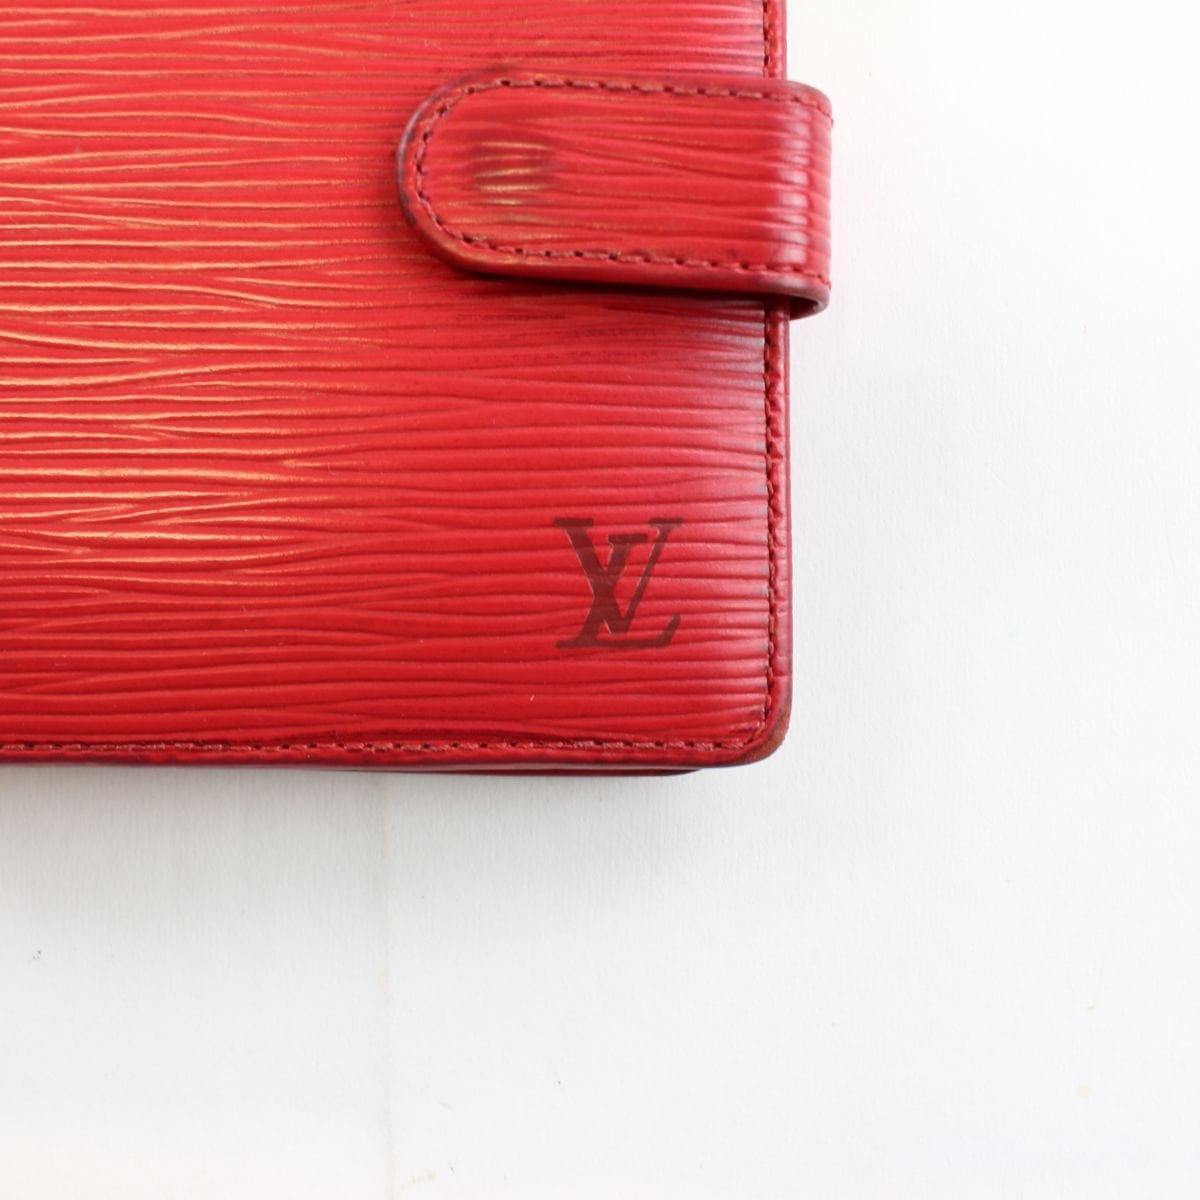 Louis vuitton red epi set - SaruGeneral